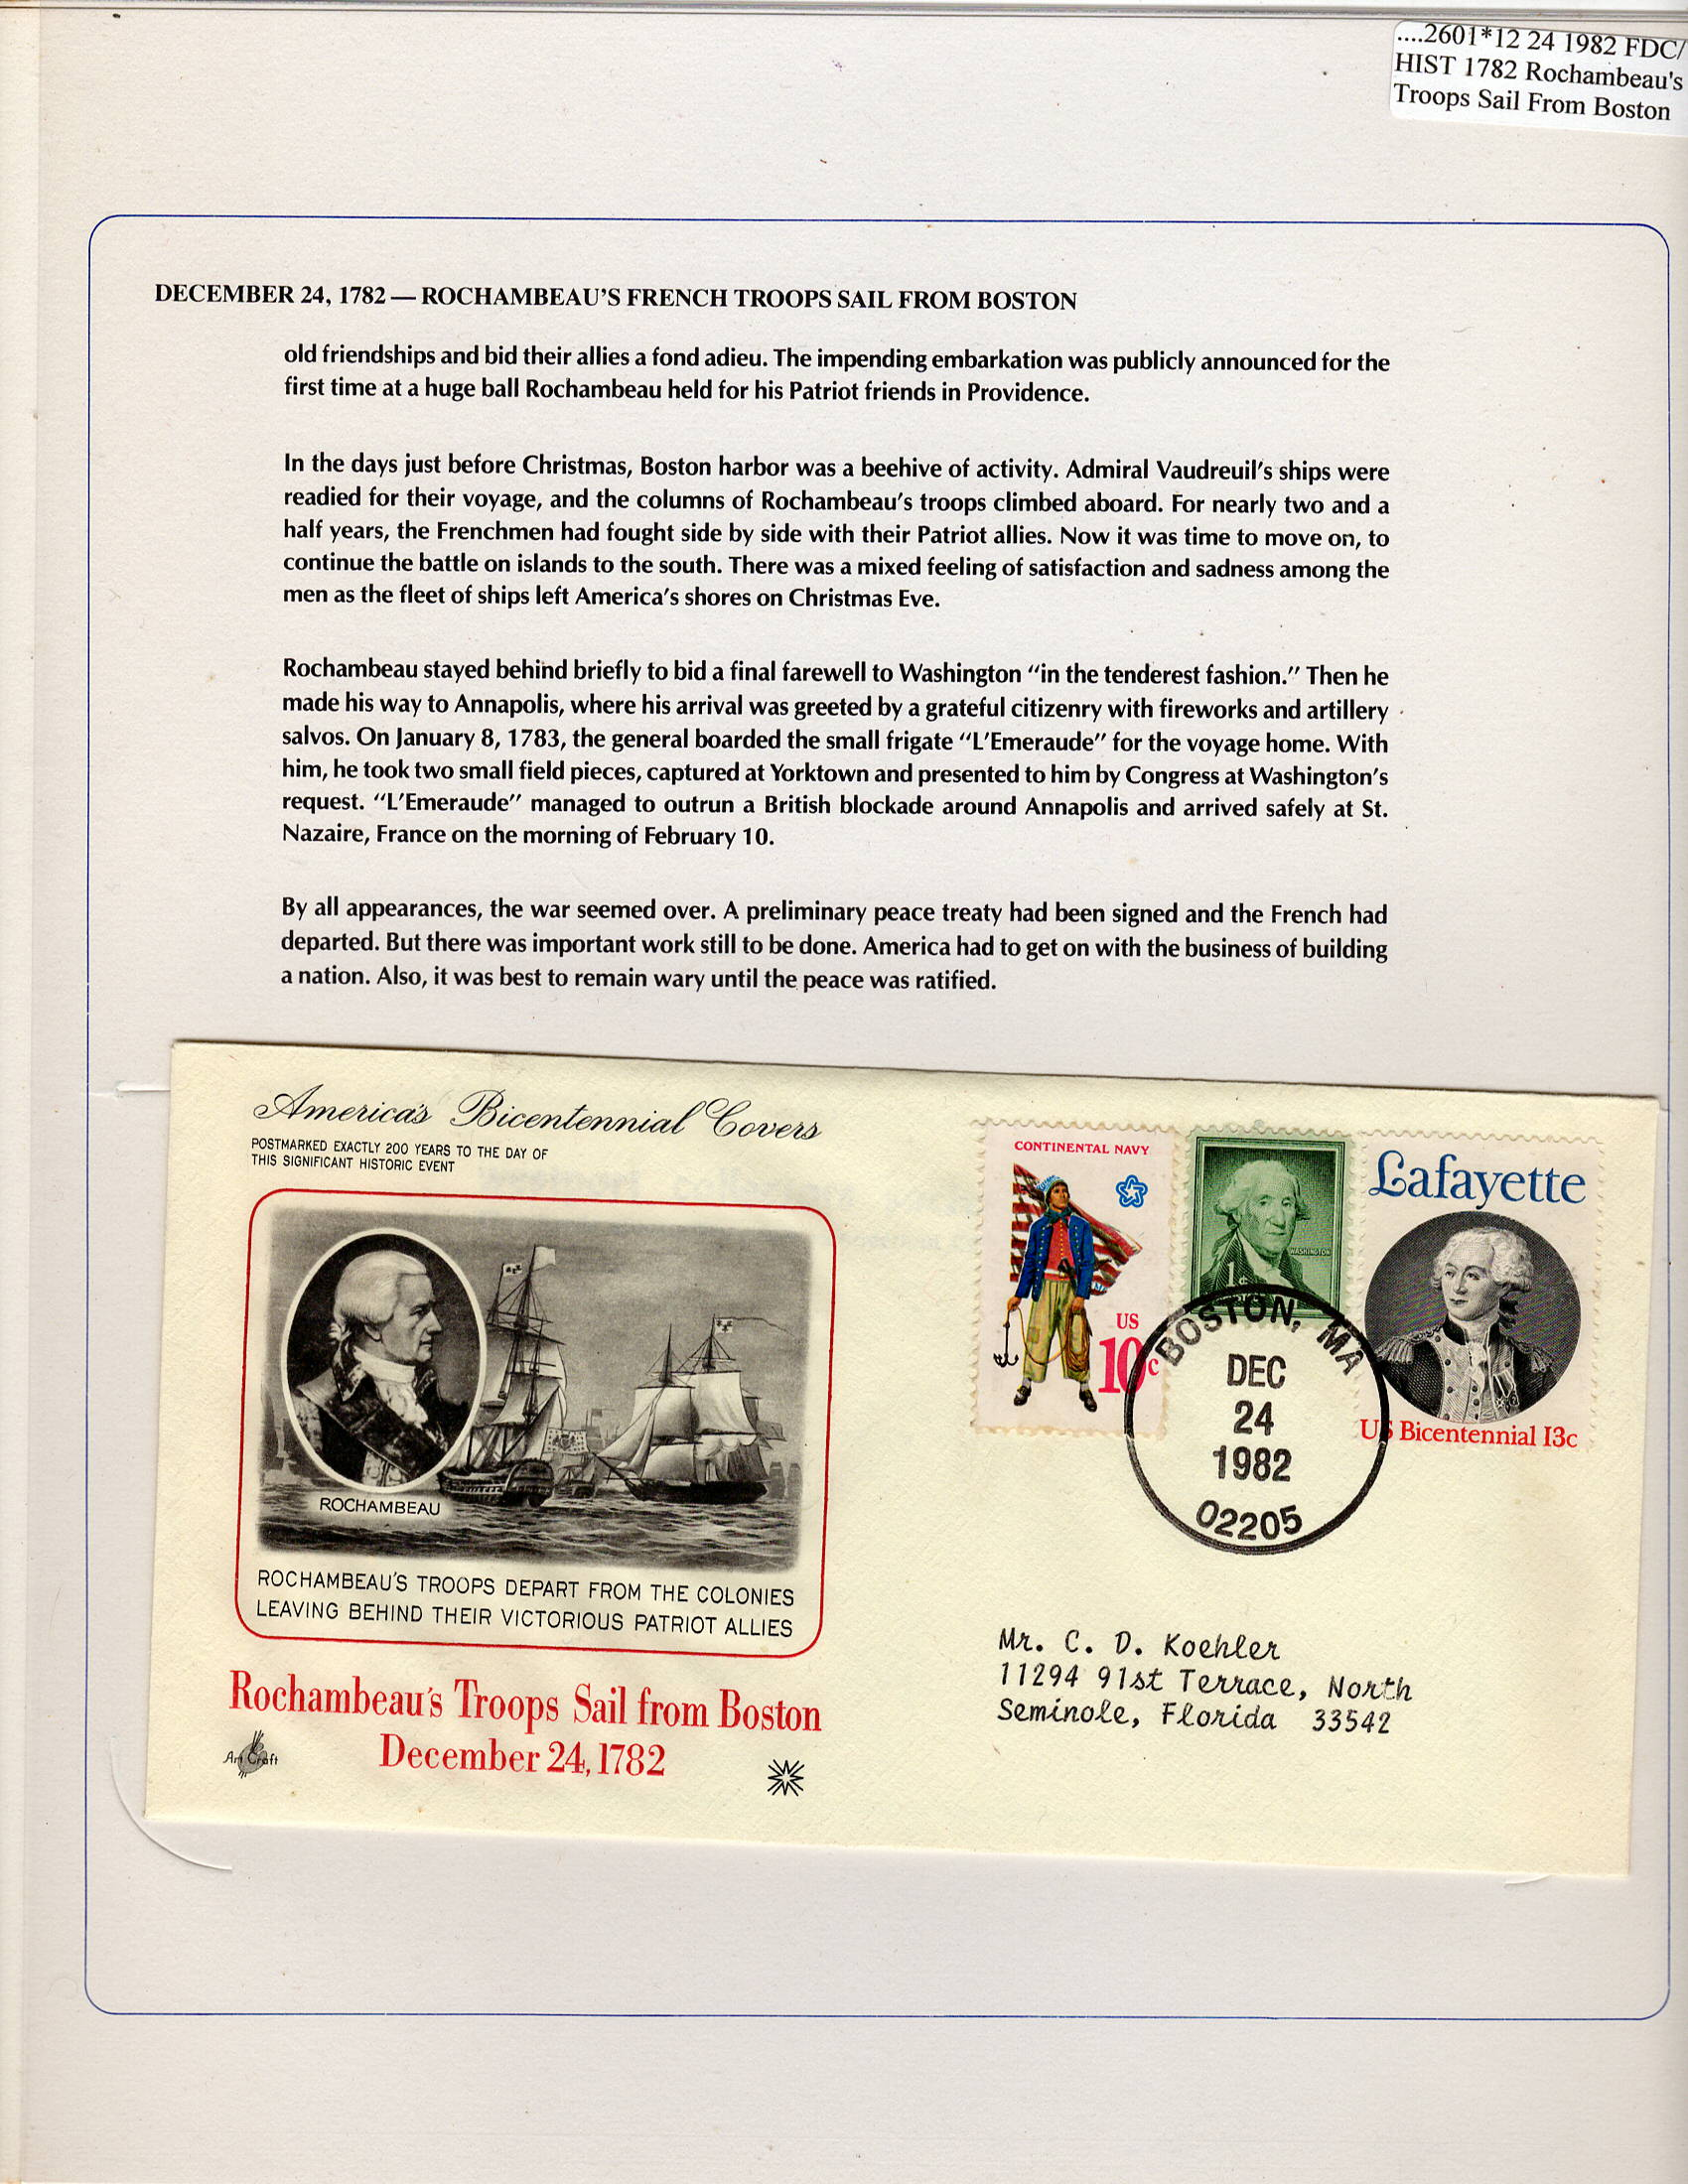 12 24 1982 FDC WH Rochambeau's Troops Sail from Boston 1782